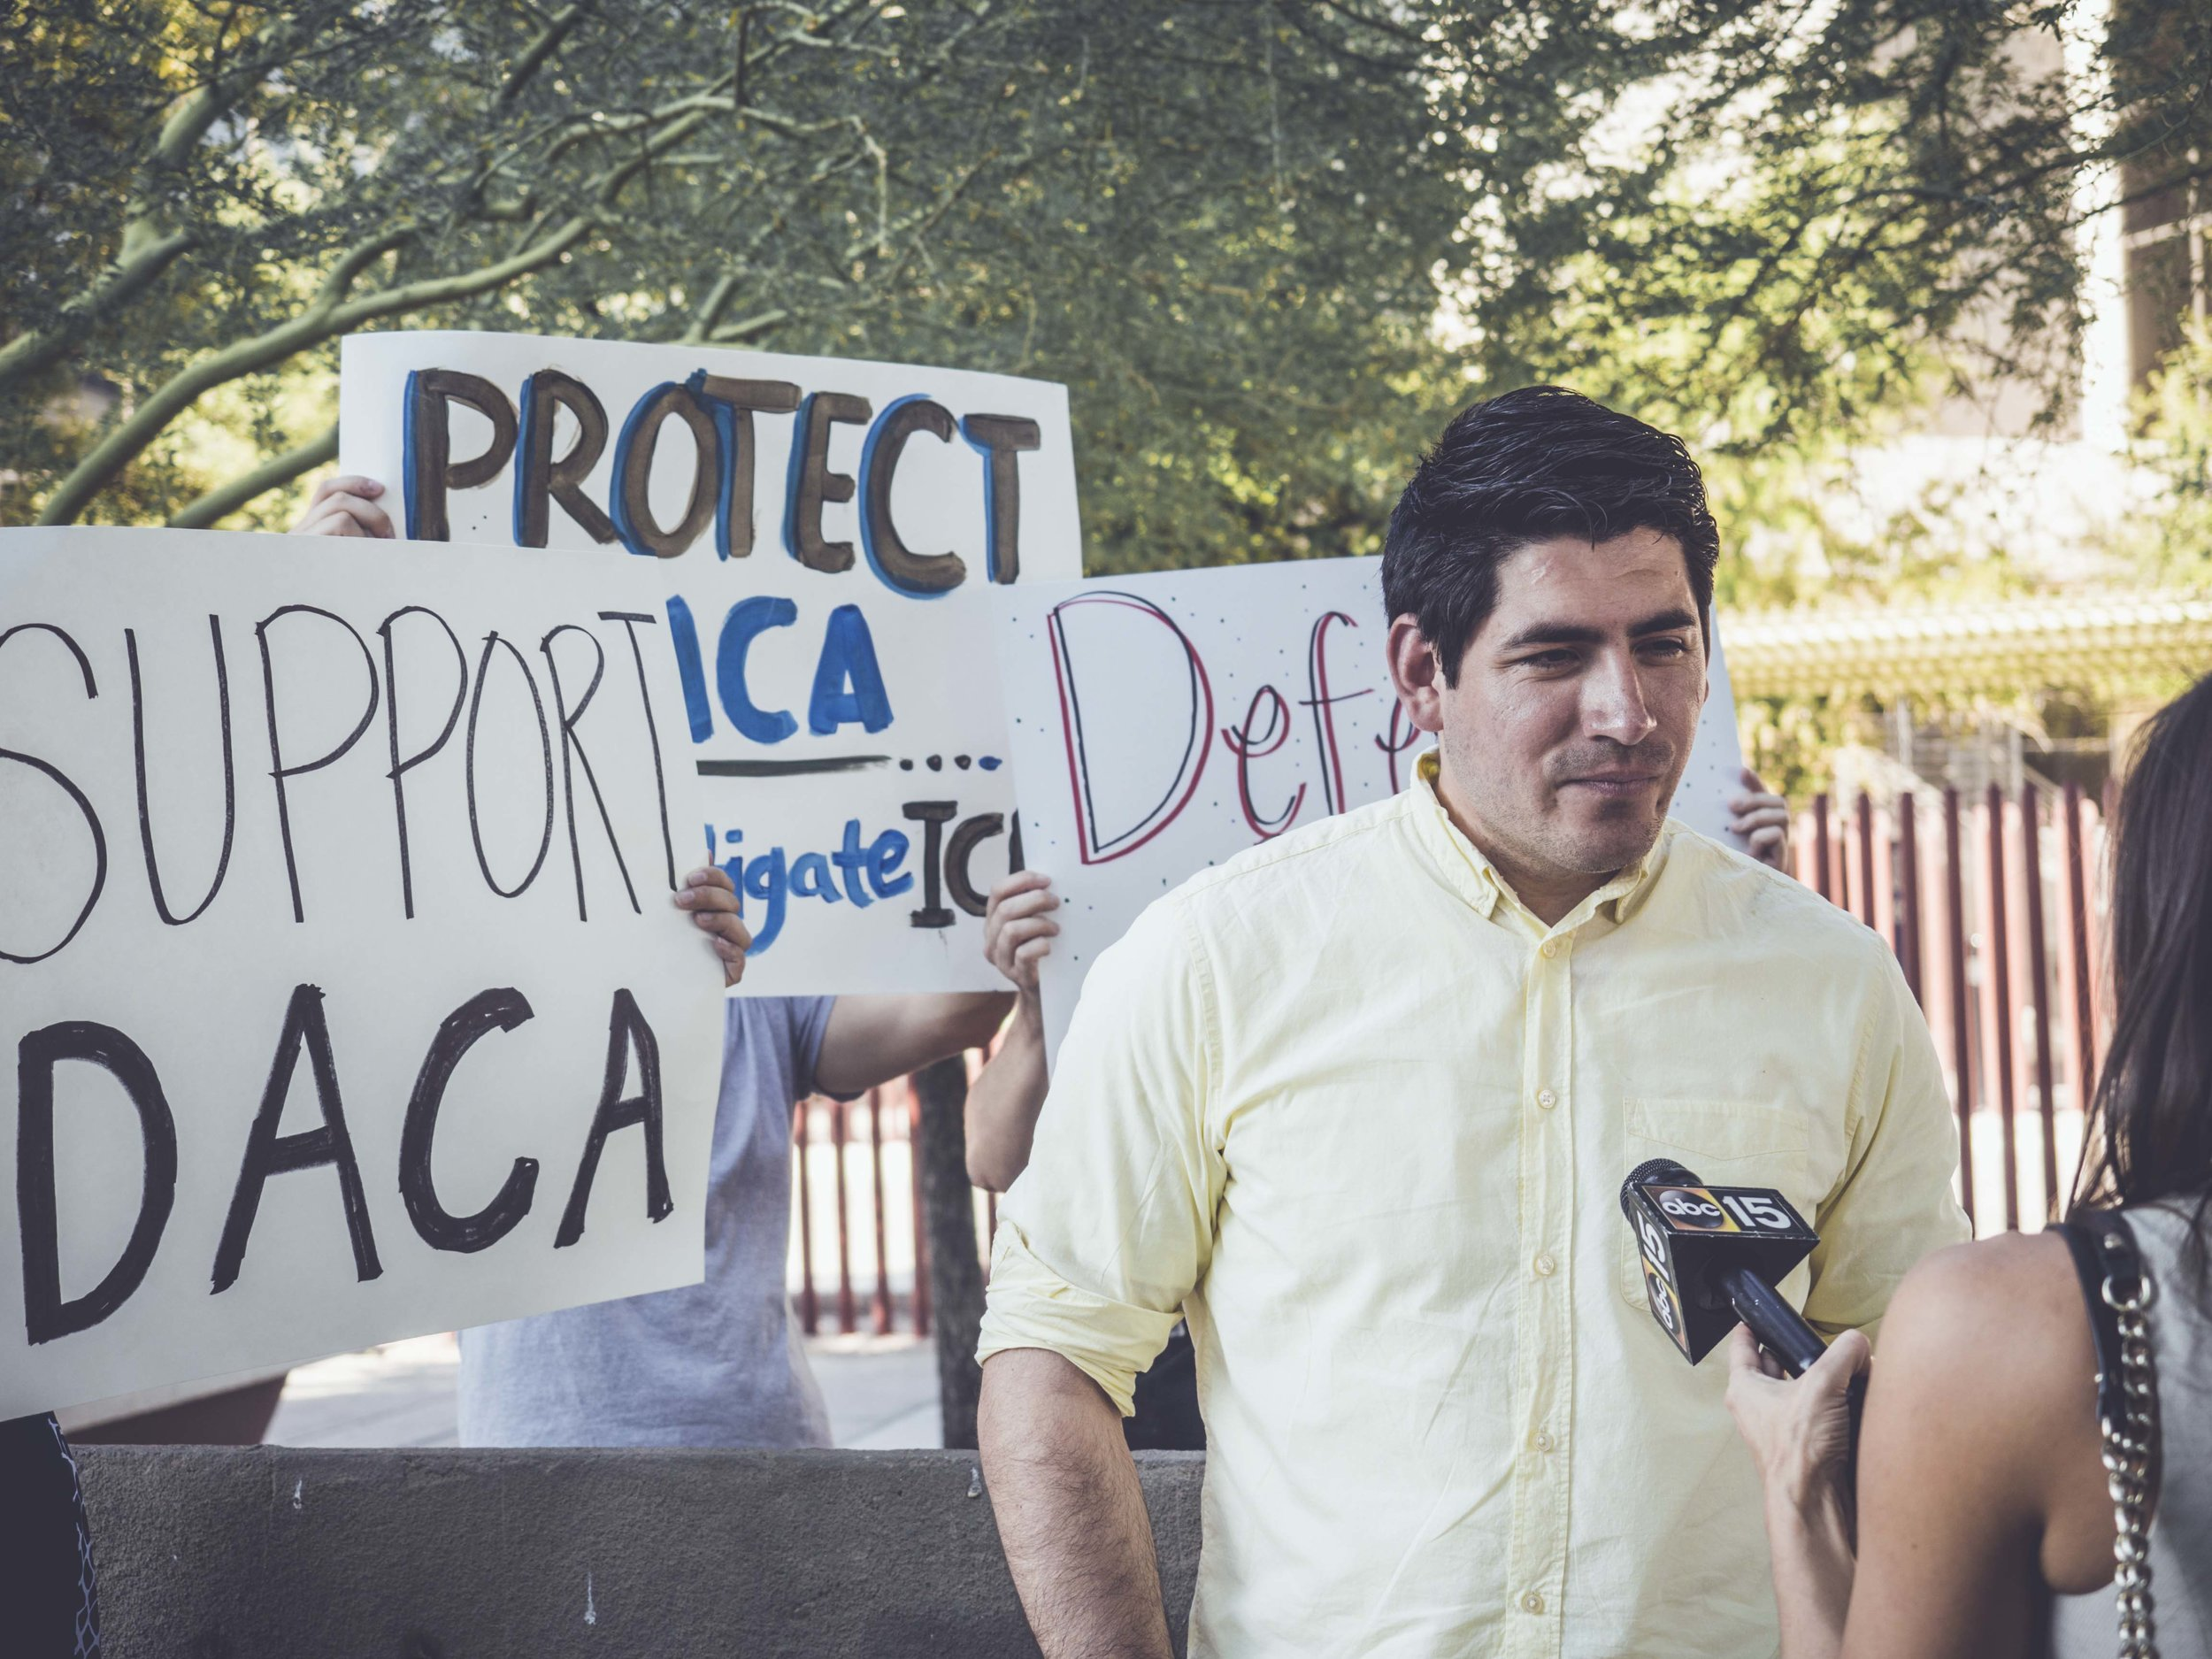 08-31-2017 Protect DACA Third Day of Action_2423_1.jpg